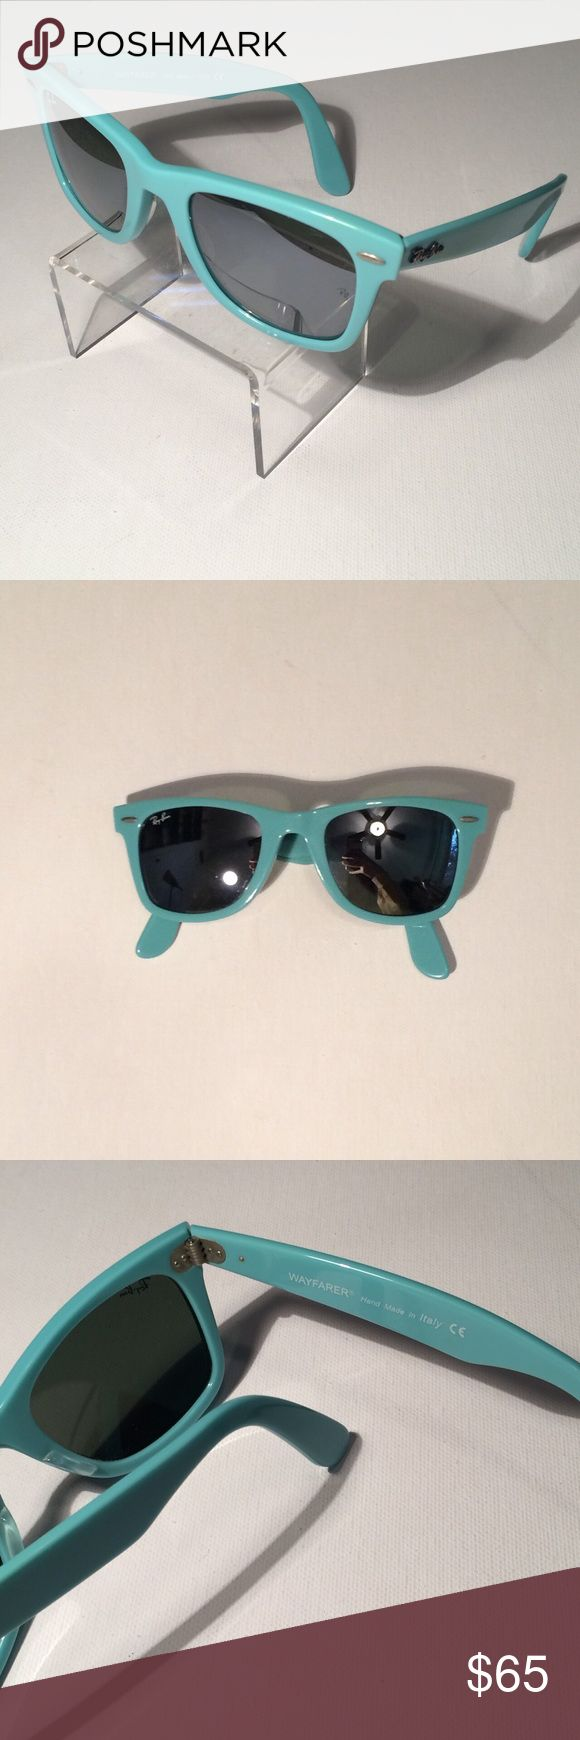 Ray Ban Wayfarer Sunglasses Light blue Ray Ban wayfarer sunglasses. In great condition. Ray Ban Accessories Sunglasses - Sale! Up to 75% OFF! Shop at Stylizio for women's and men's designer handbags, luxury sunglasses, watches, jewelry, purses, wallets, clothes, underwear